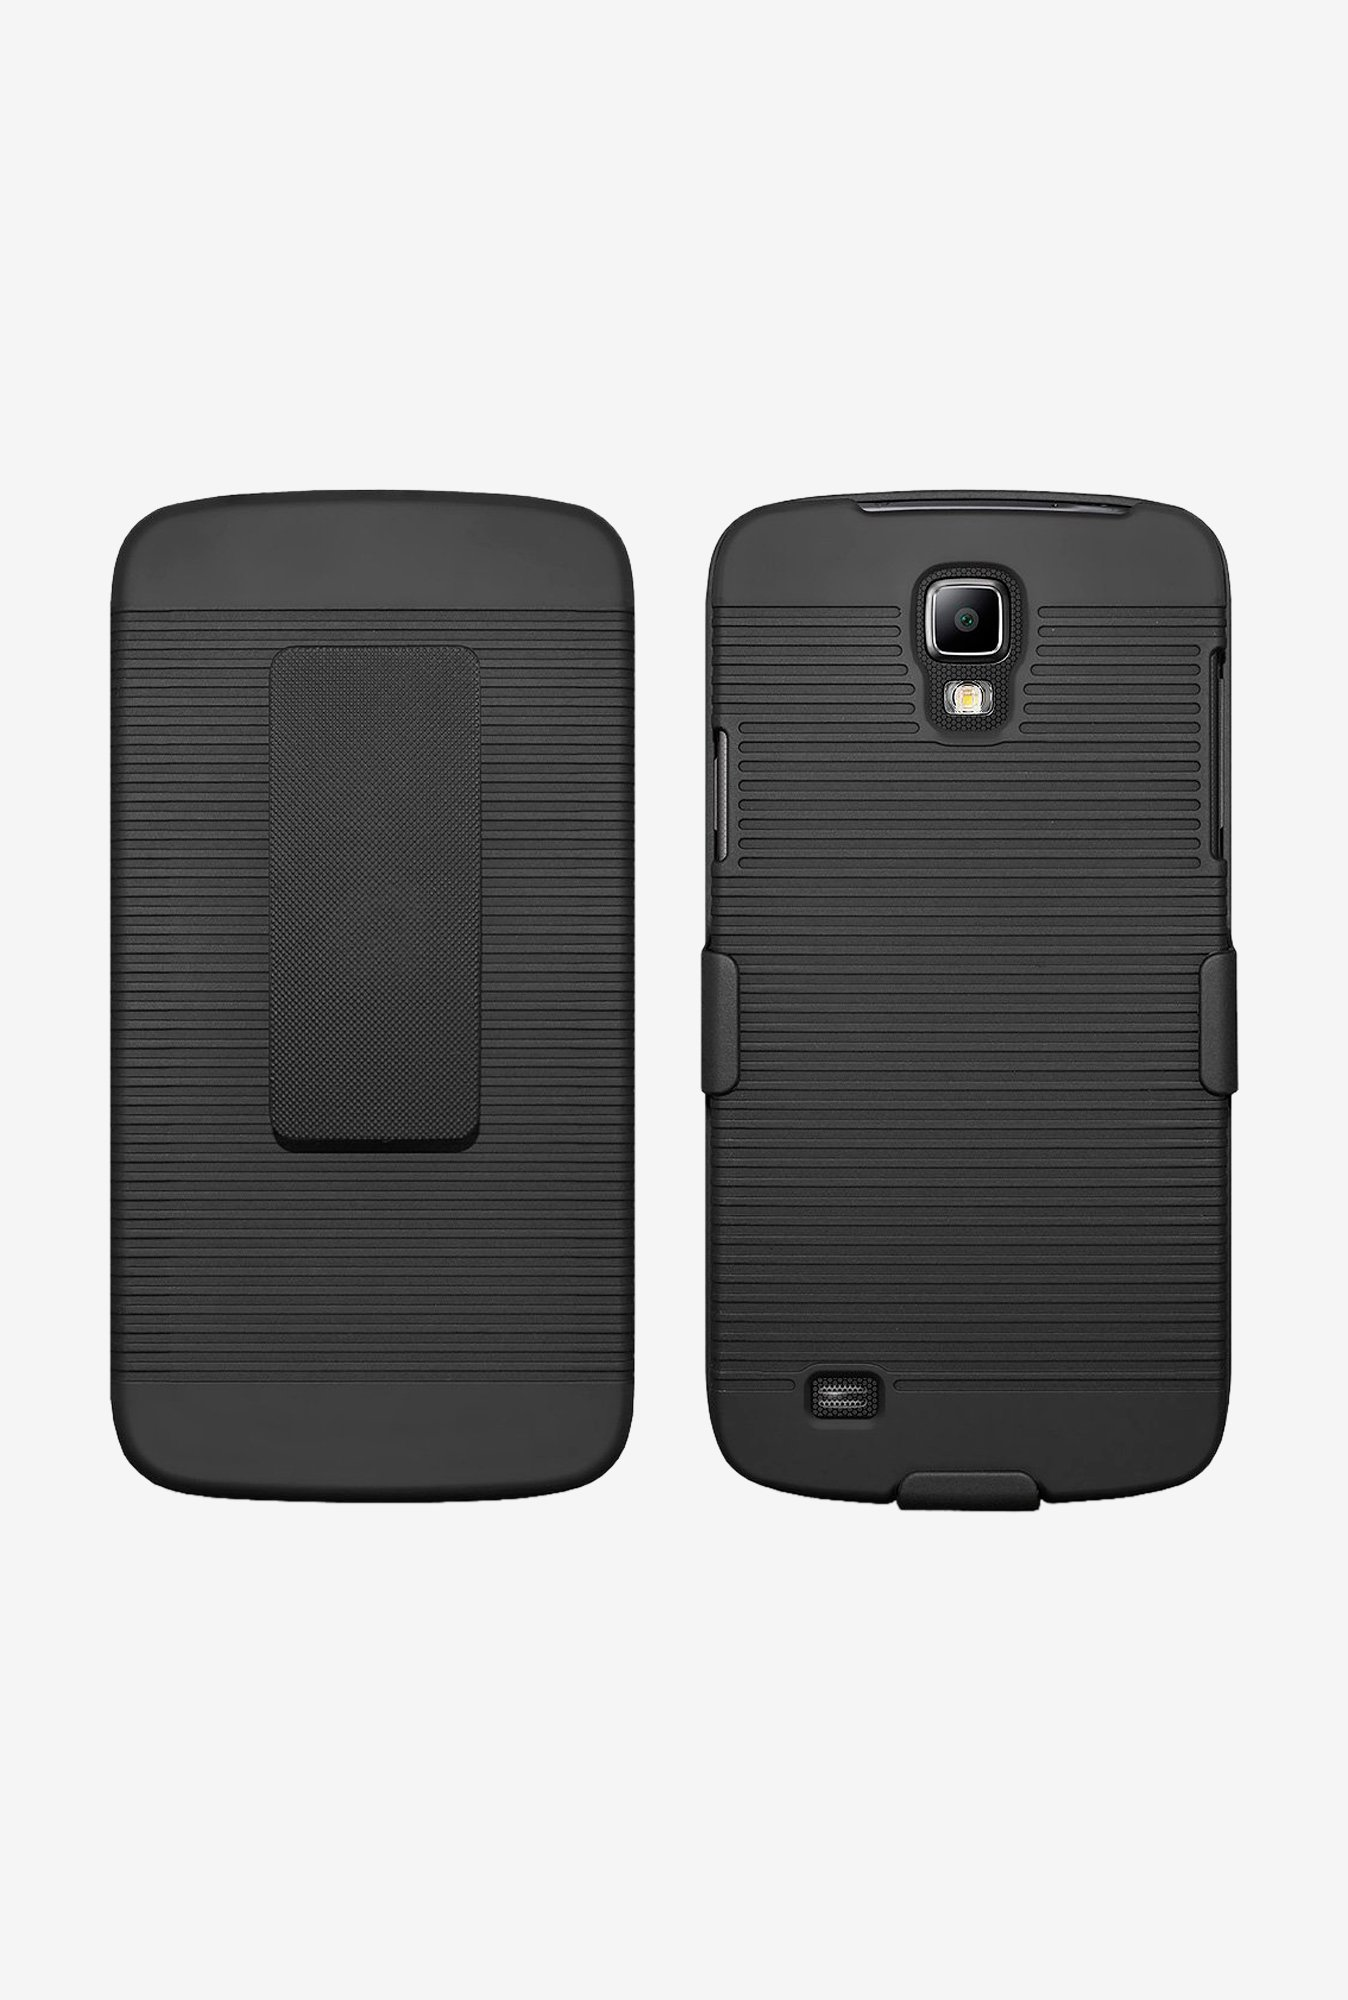 Amzer Shellster Shell Case Black for Galaxy S4 Active